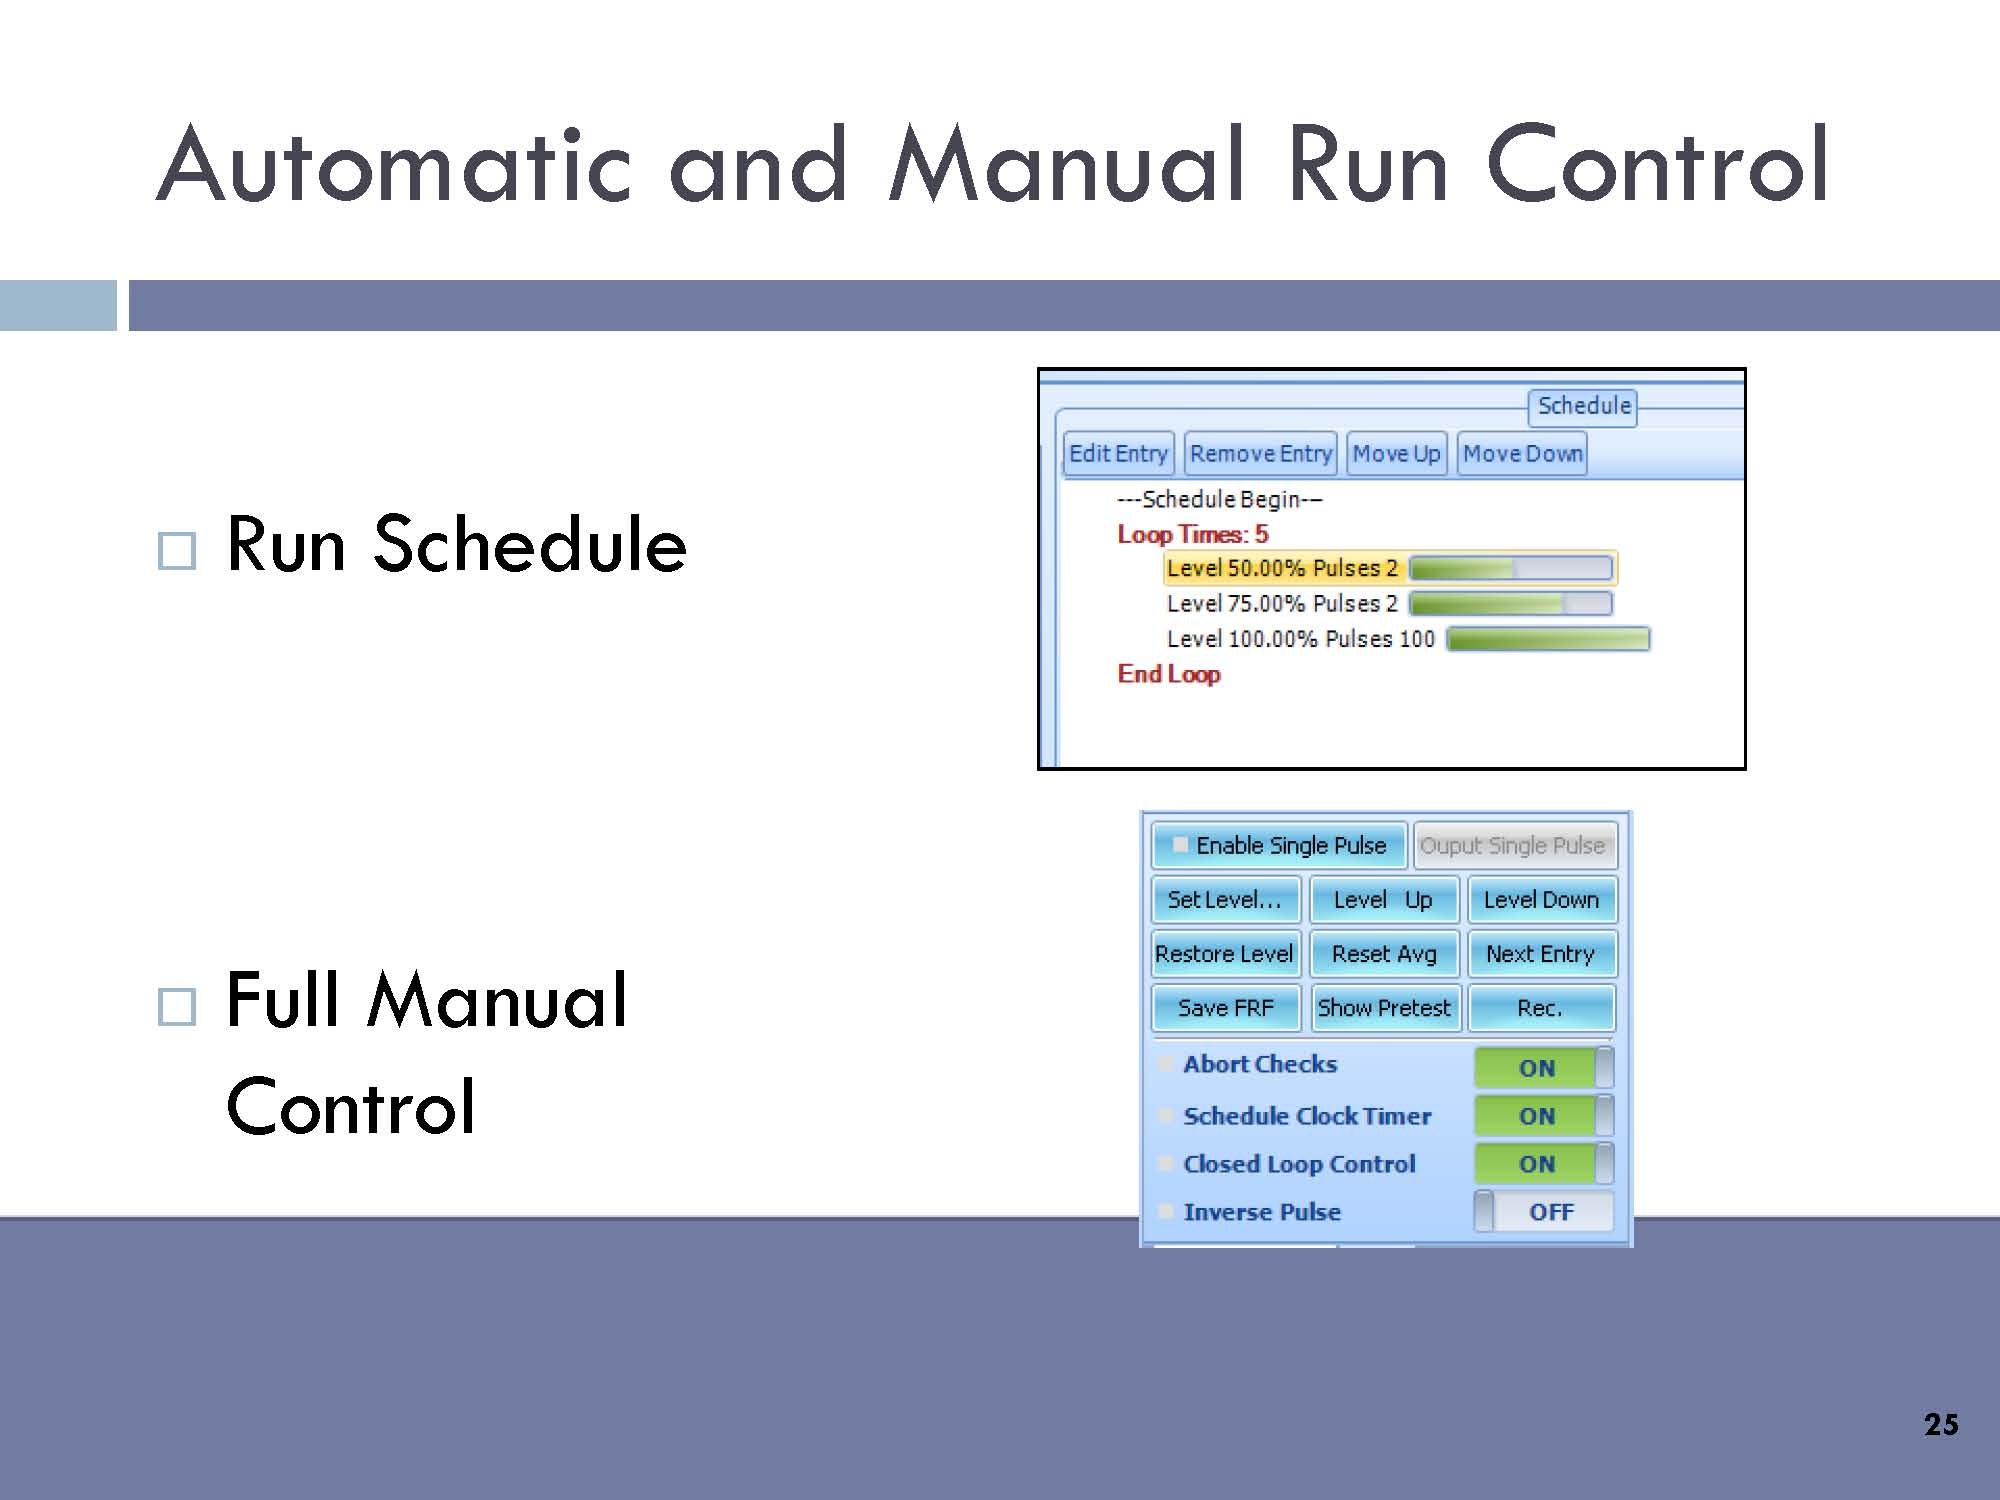 Automatic and manual run control: Run schedule, full manual control.